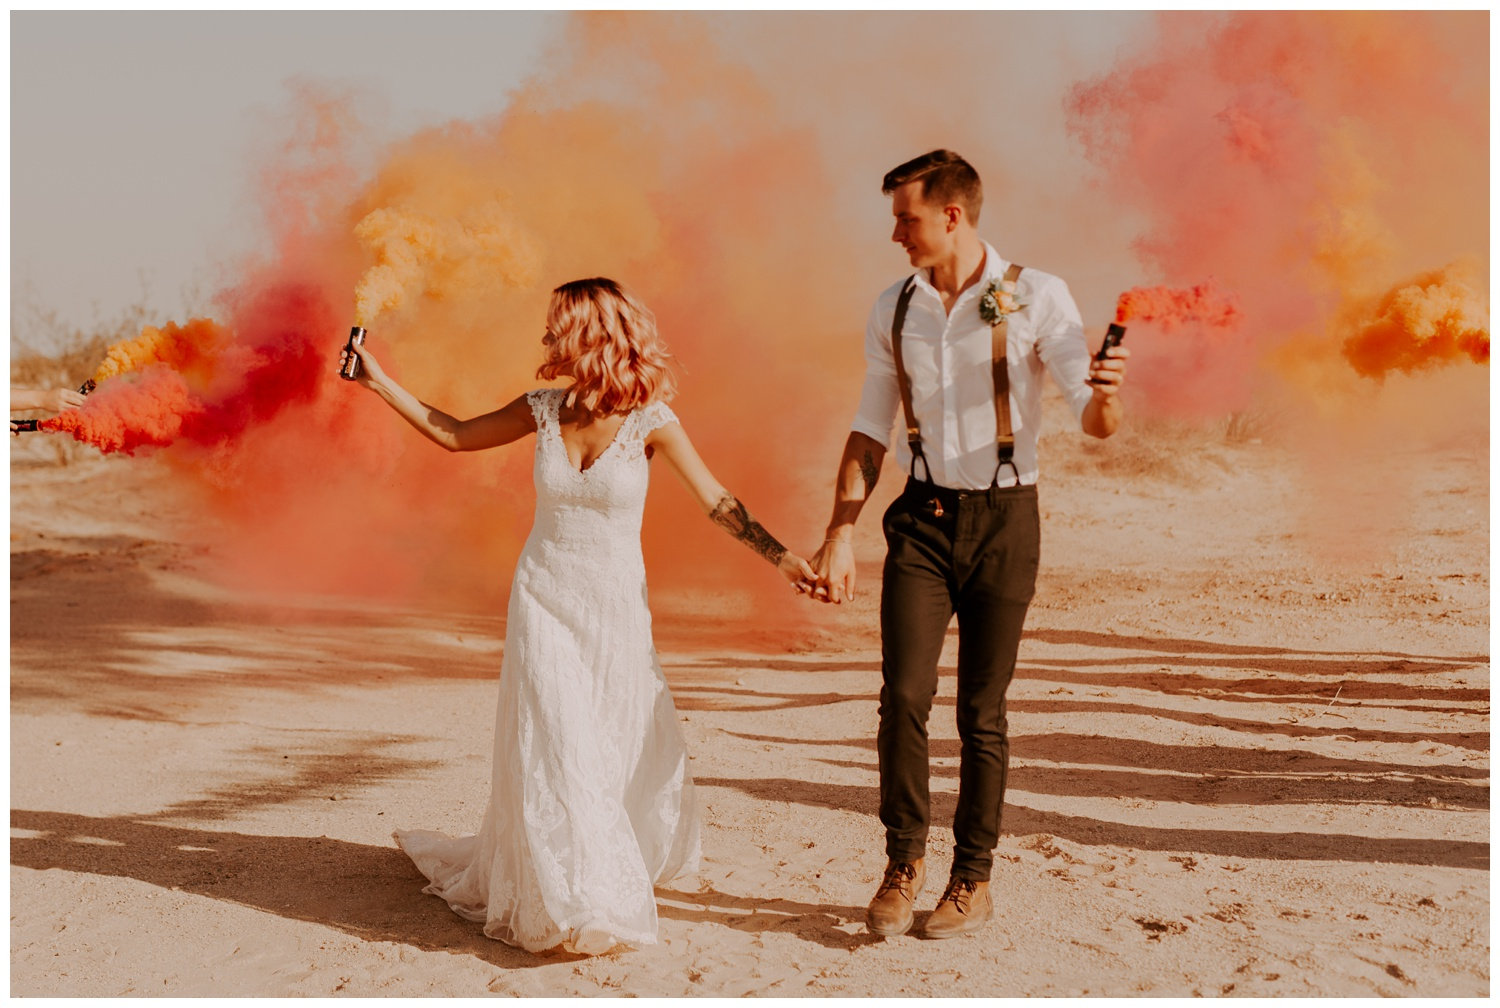 Salvation Mountain Elopement Palm Springs Pink Hair Bride - Jessica Heron Images_0143.jpg